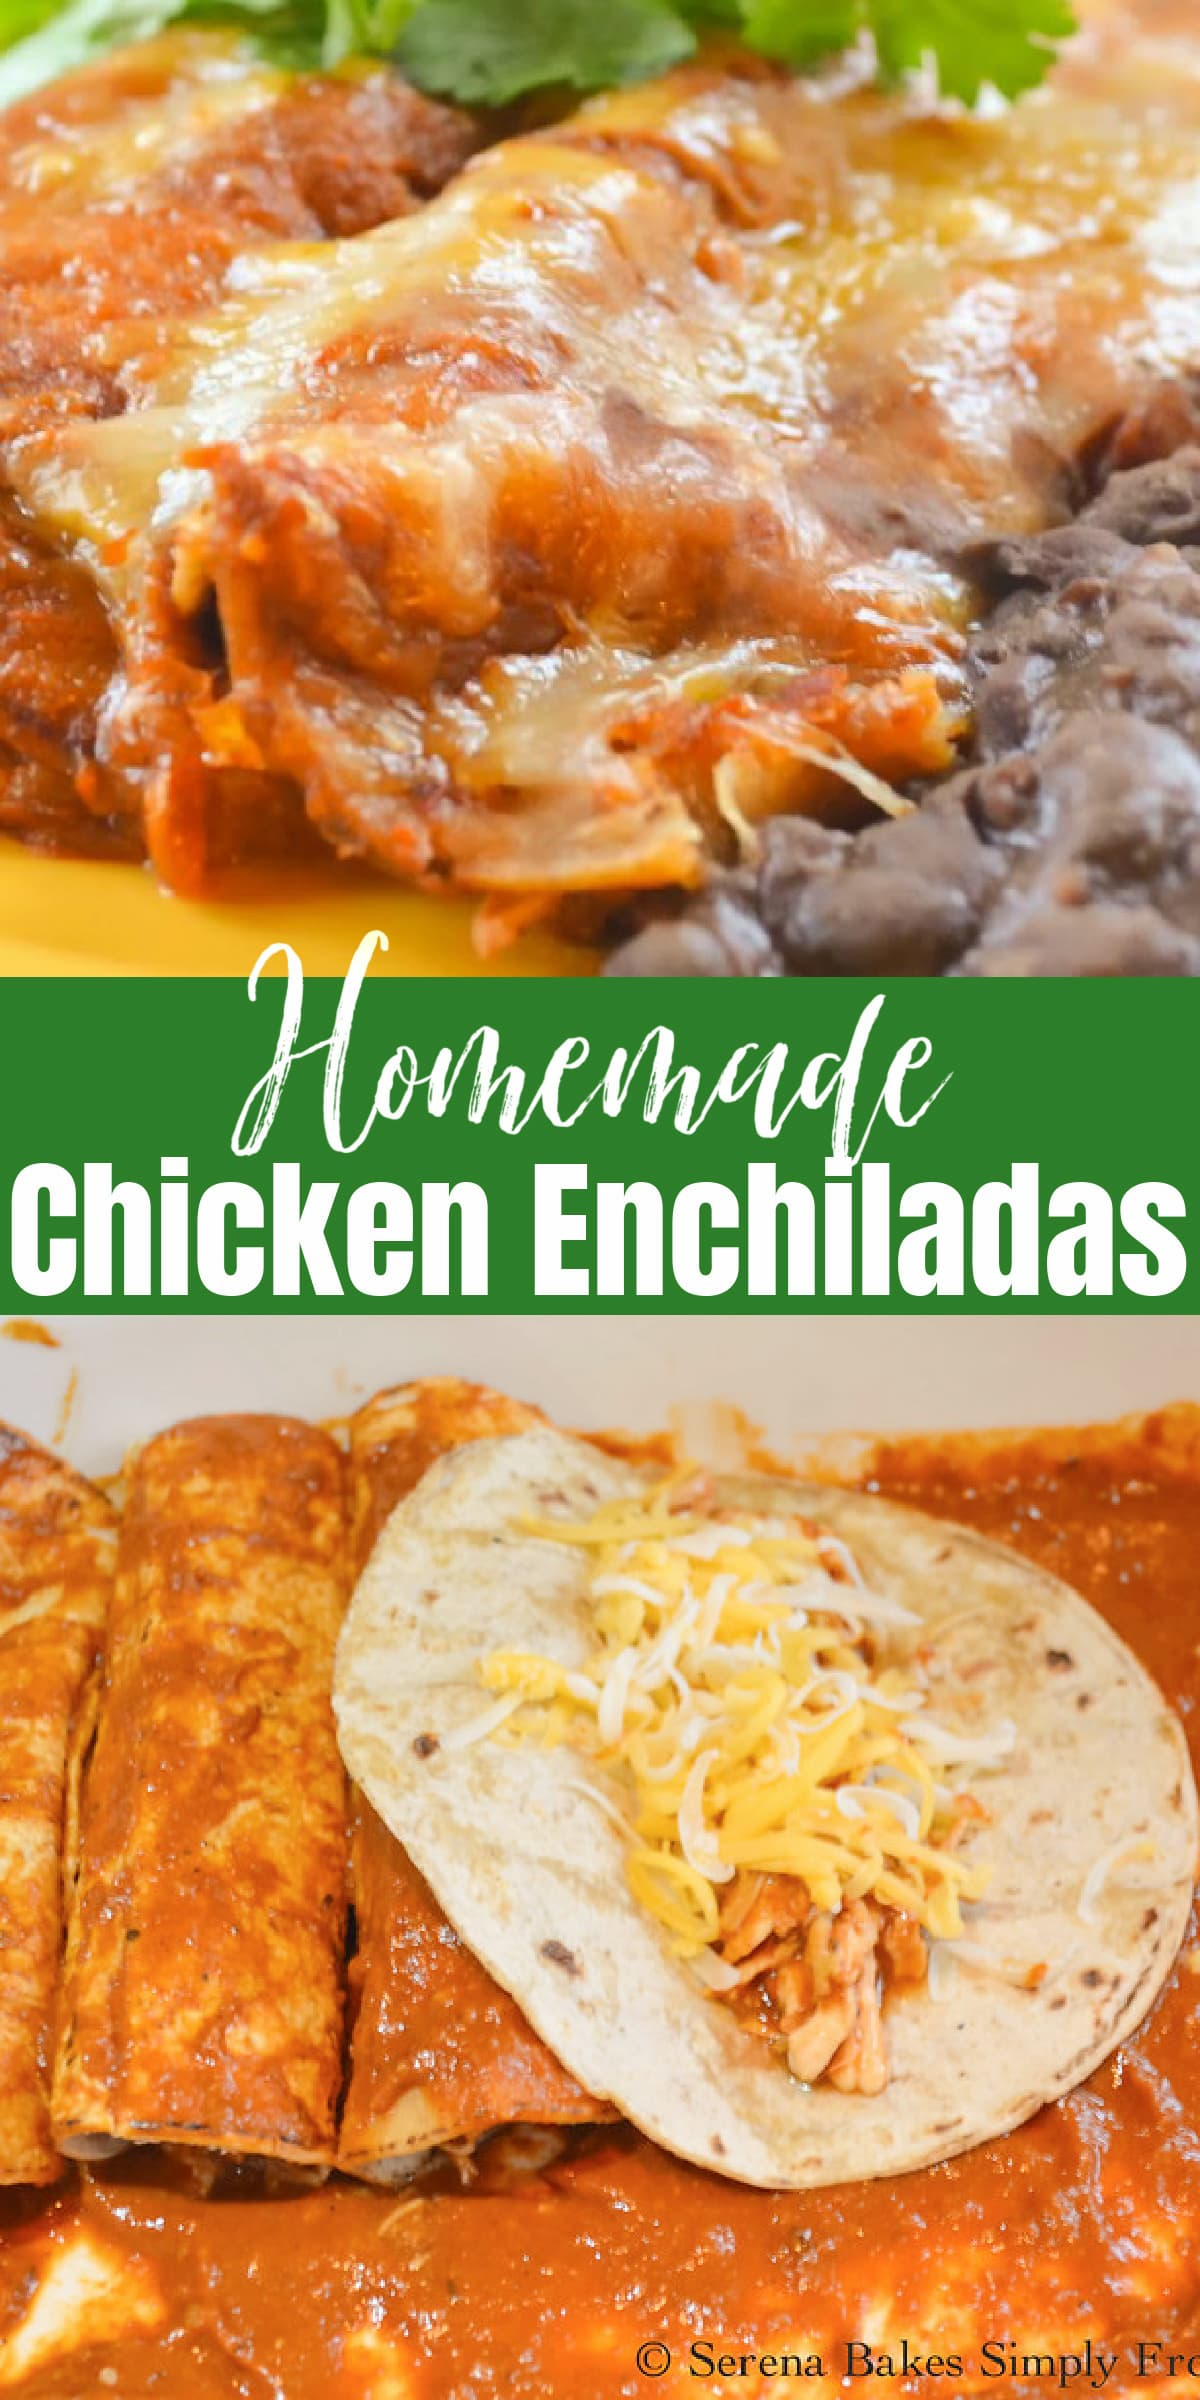 Top photo baked Chicken Enchiladas with Red Sauce on a plate. Bottom photo is a Chicken Enchilada about to be rolled.